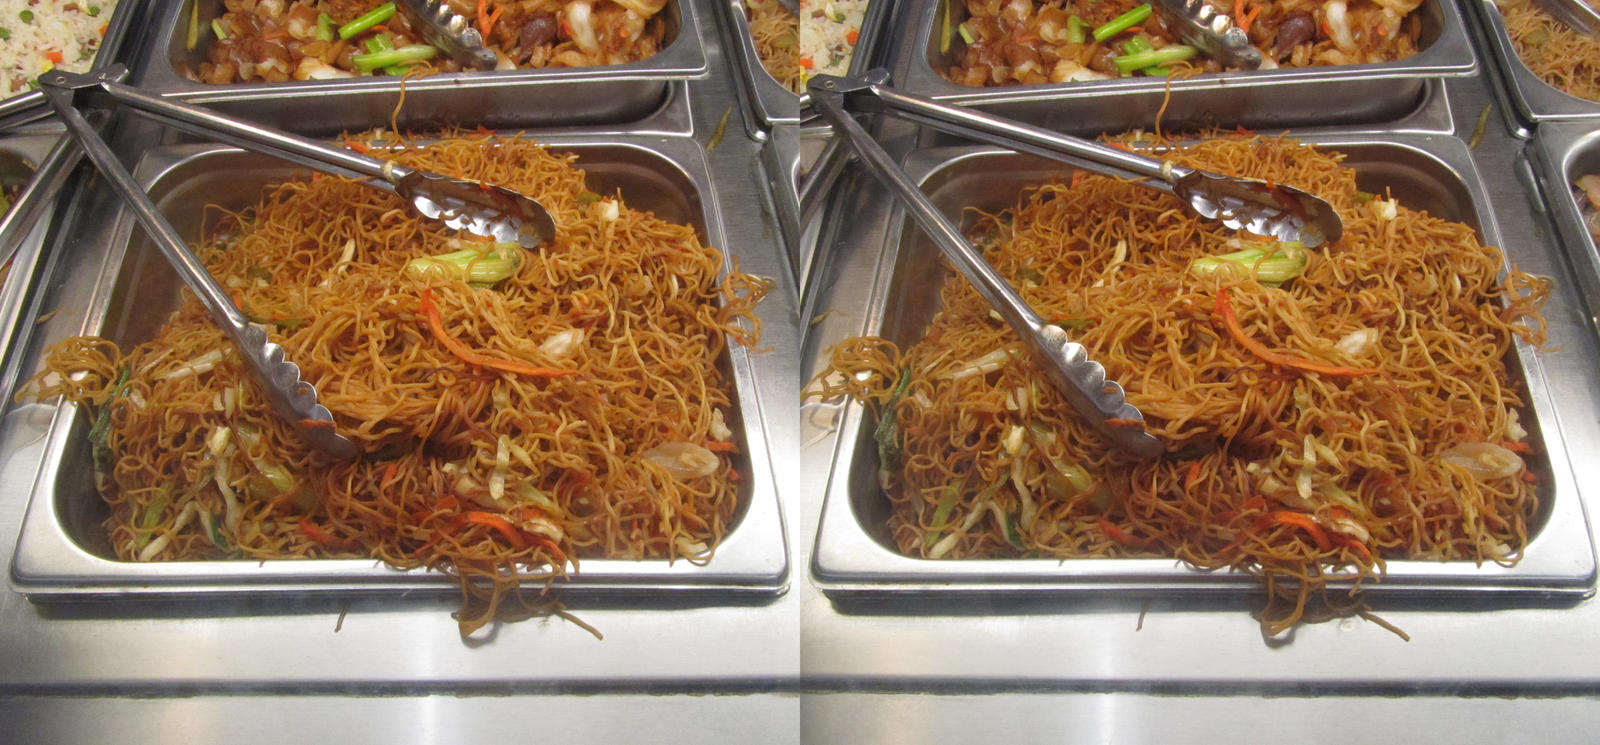 Stereograph - Lo Mein by alanbecker